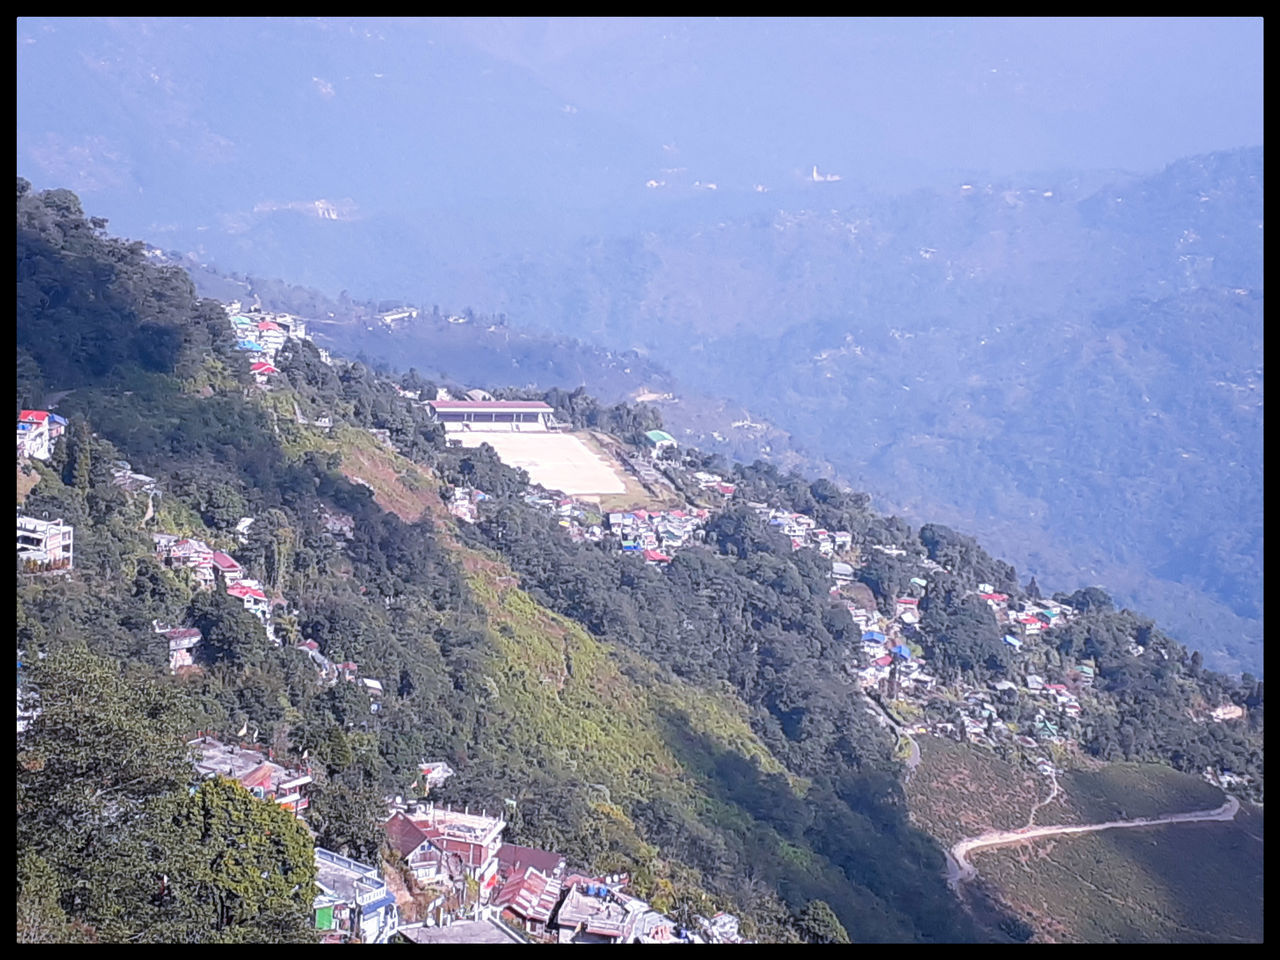 HIGH ANGLE VIEW OF TOWNSCAPE BY MOUNTAIN